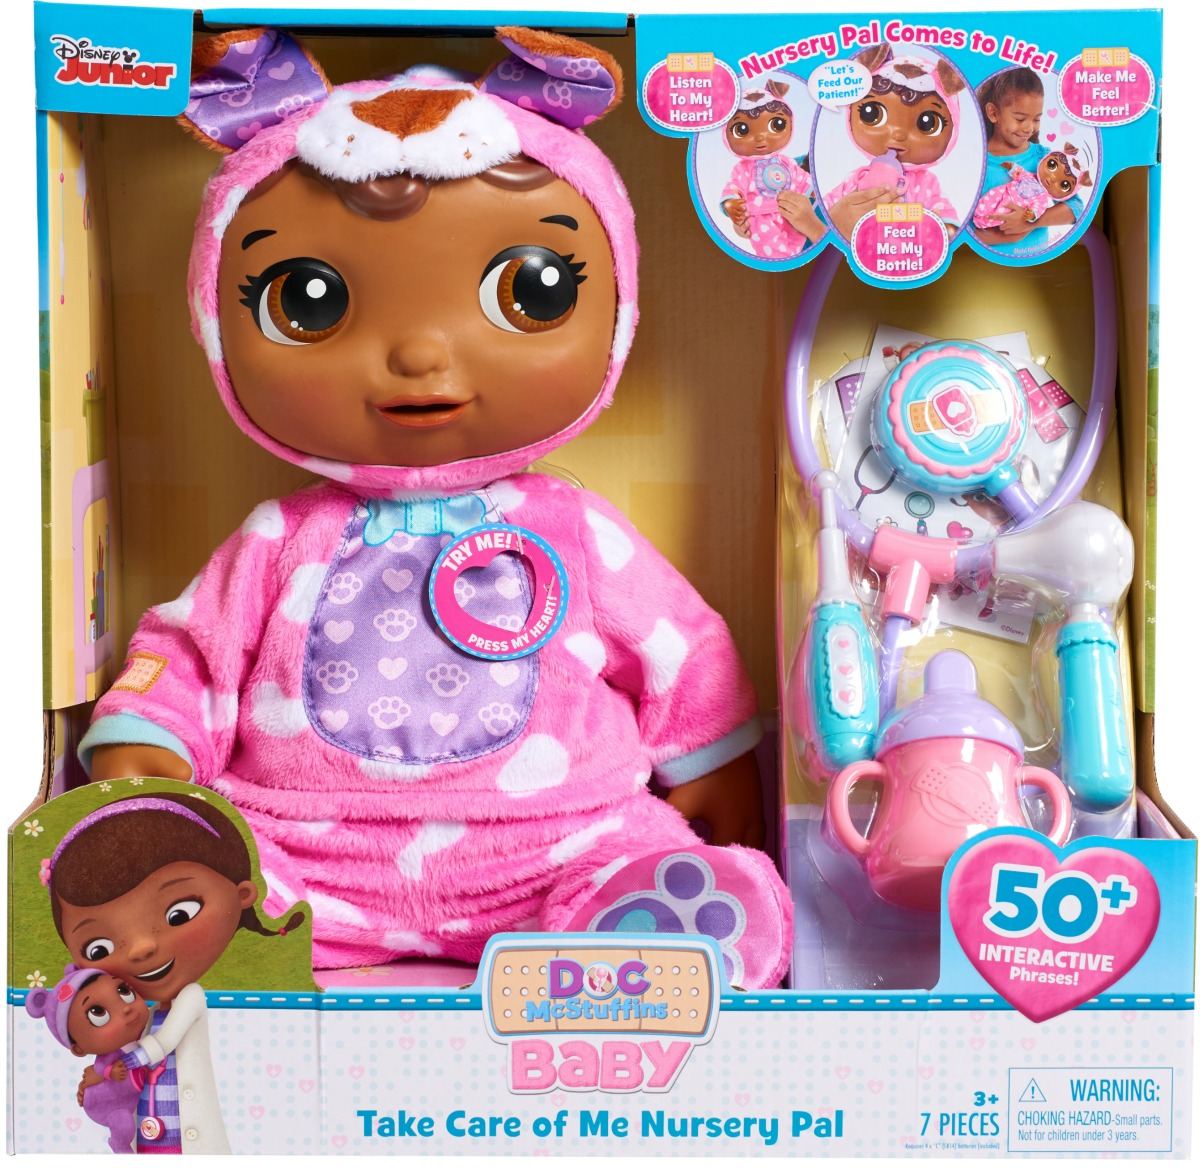 doc mcstuffins nursery pal in packaging